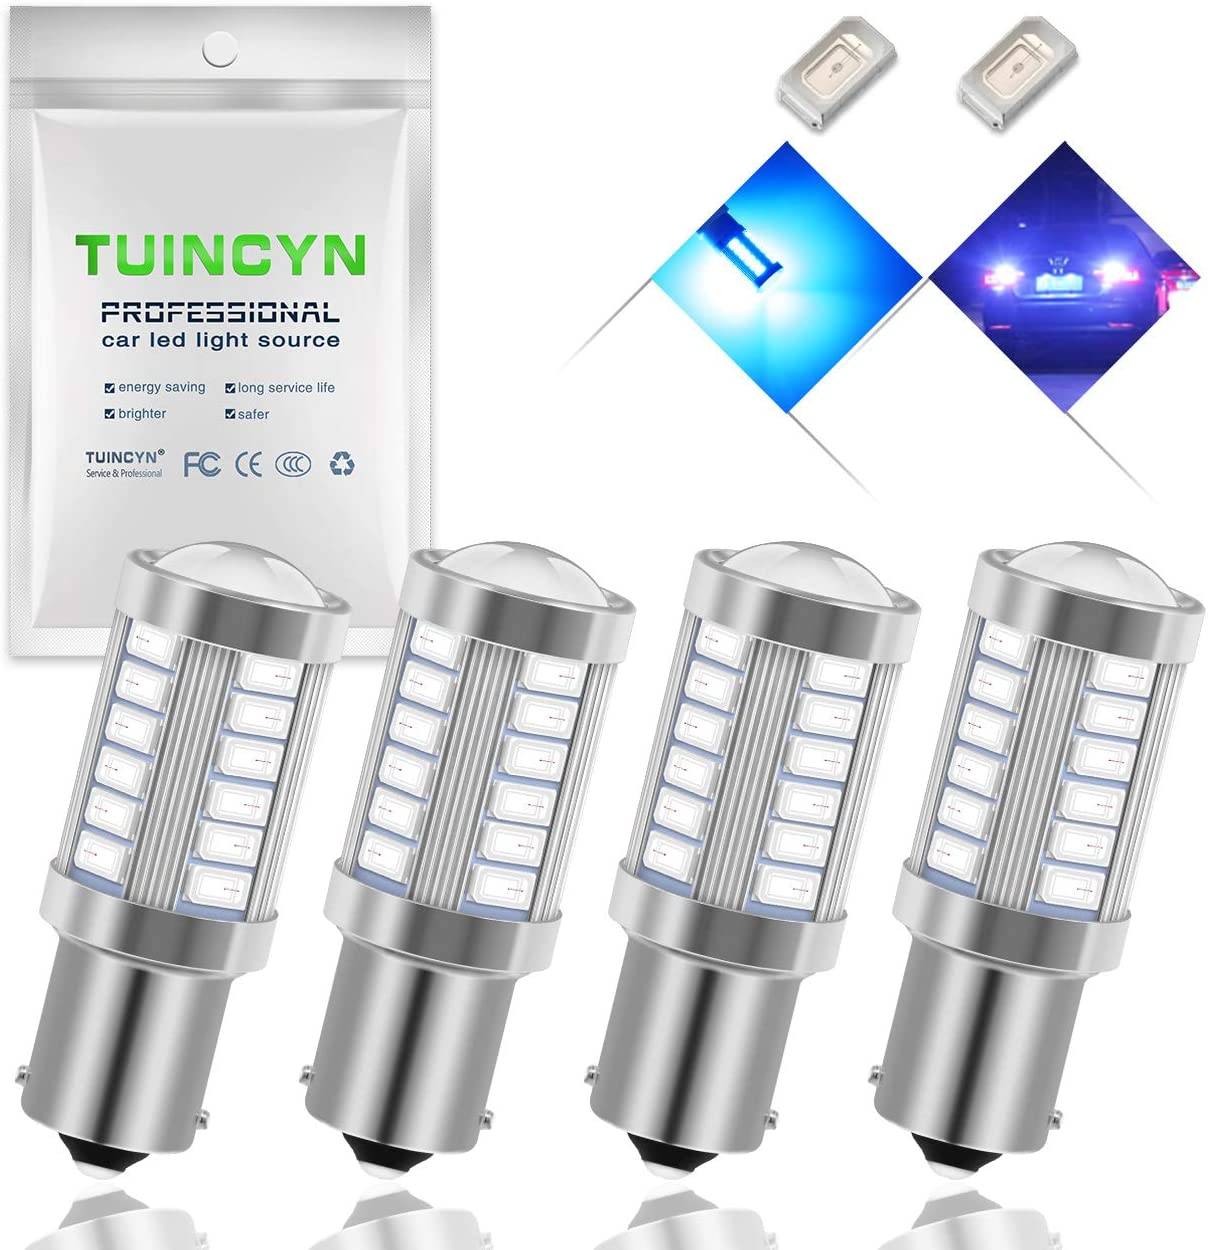 EverBright 20-Pack Extremely Bright White 1156 BA15S 1141 1073 1095 1003 7506 24-SMD LED Car Replacement Interior RV Camper Rear Turn Signal,Back Up,Parking Side Marker Light Bulb DC 12V YM E-Bright 4350381894